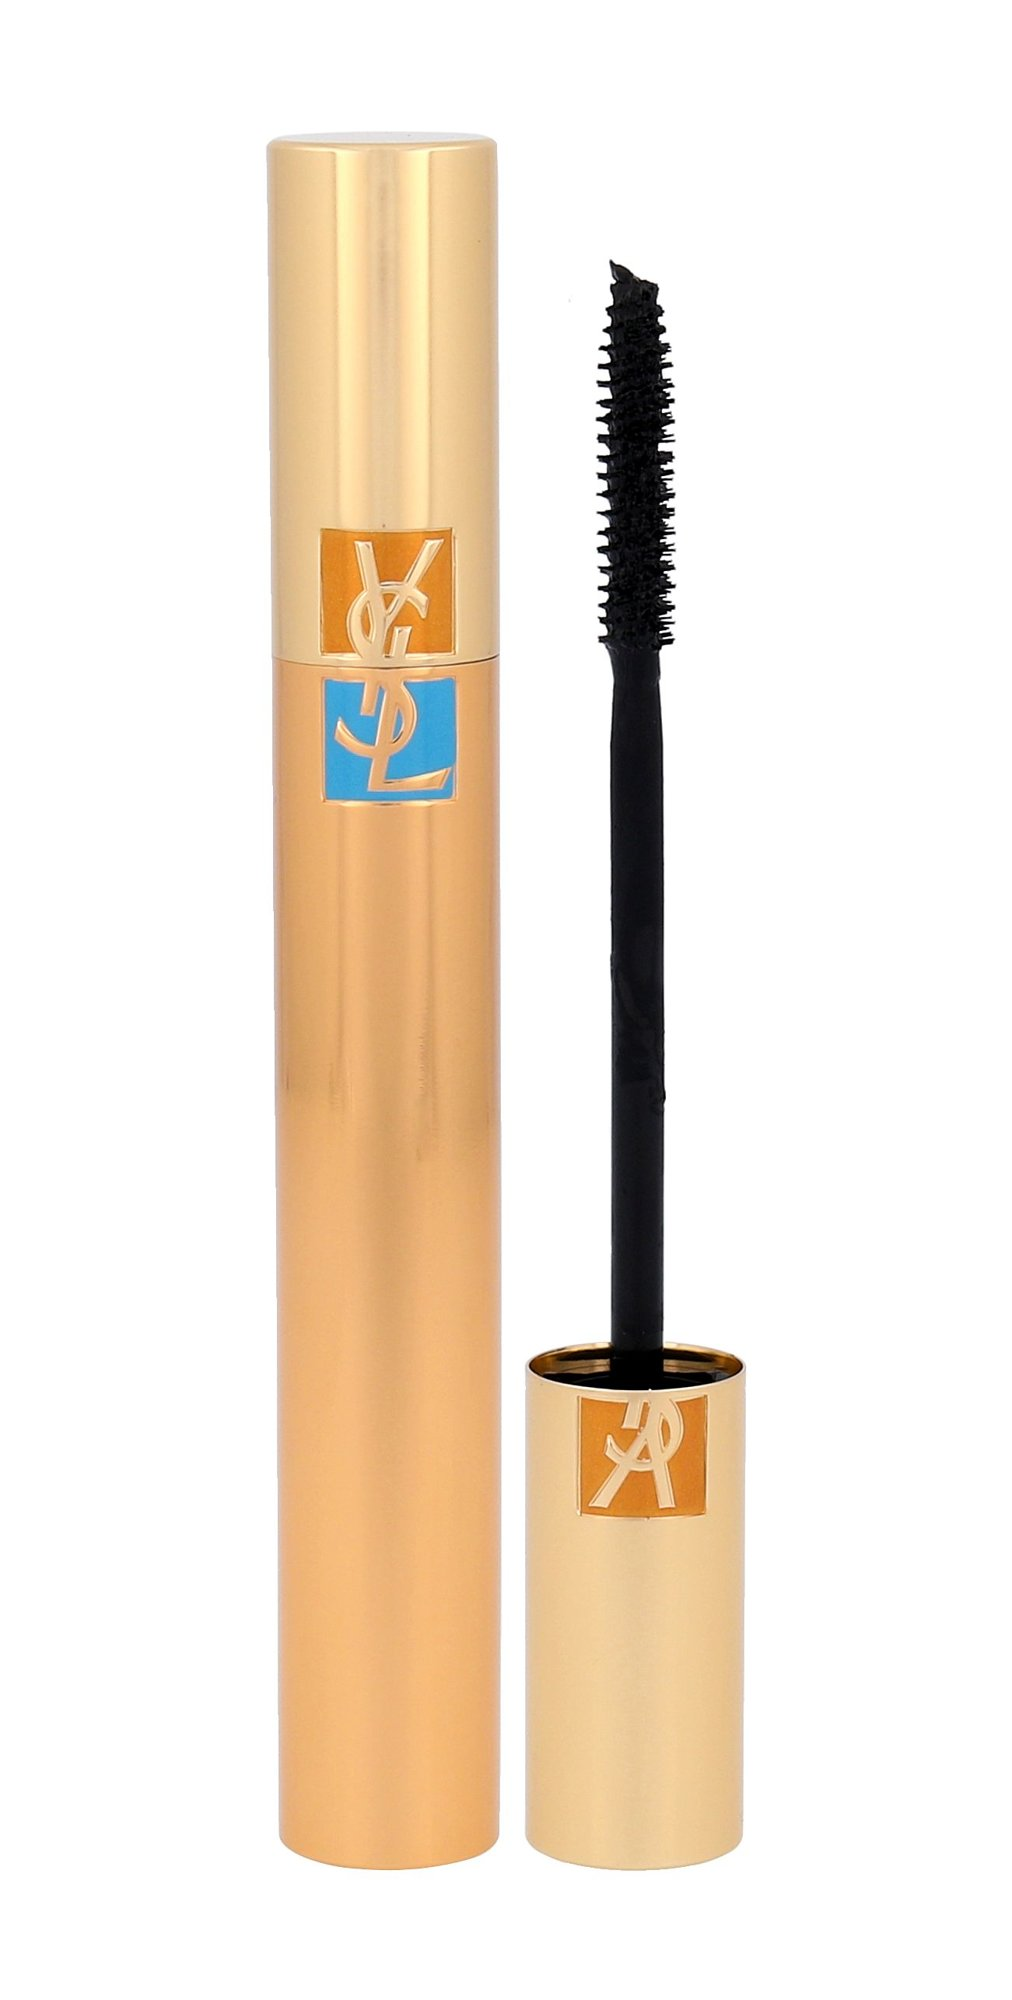 Yves Saint Laurent Mascara Volume Effet Faux Cils Waterproof Cosmetic 6,9ml 01 Black